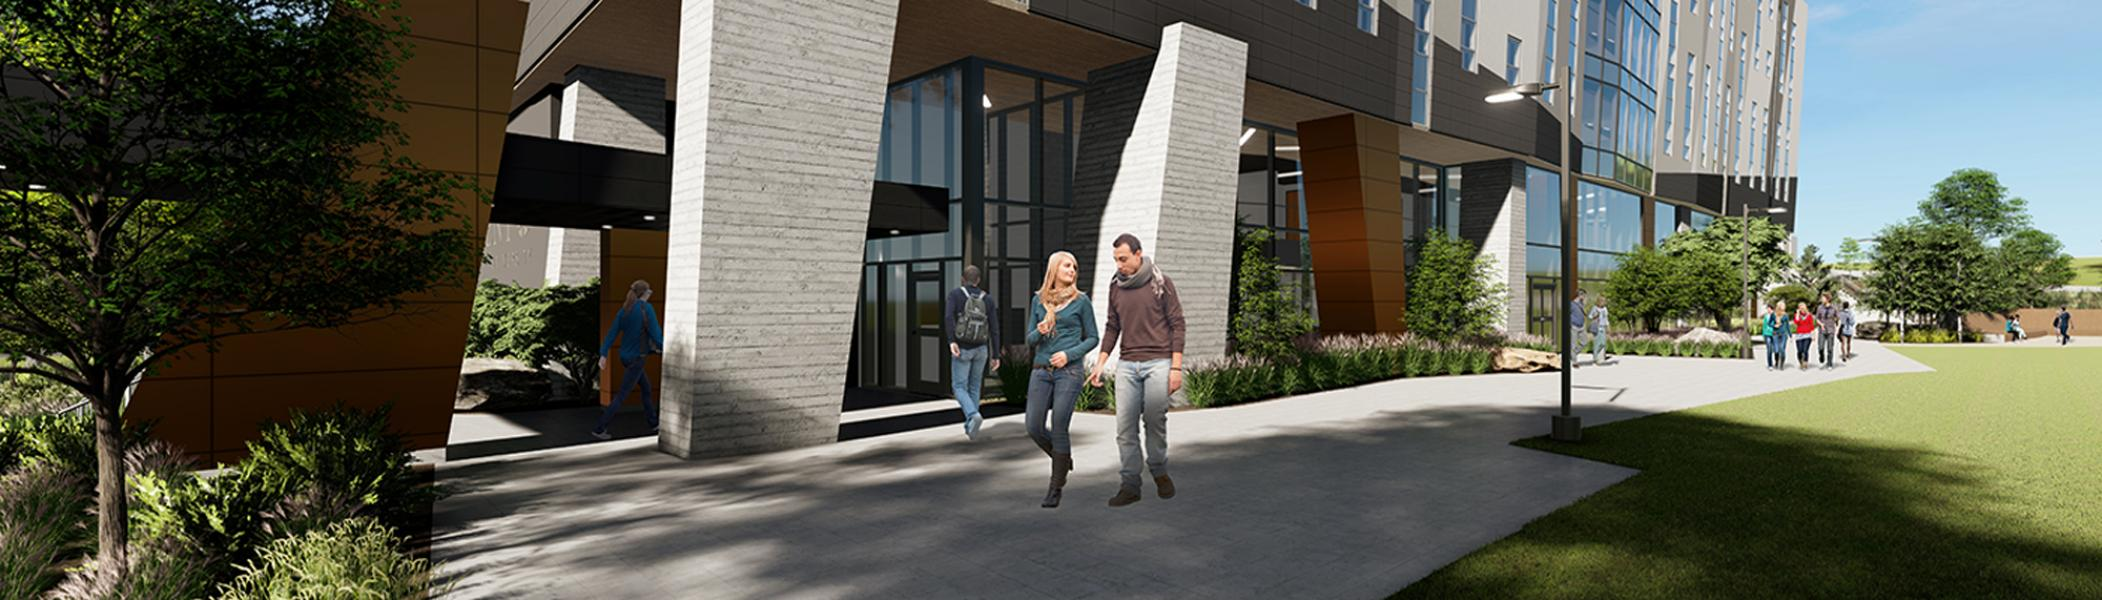 Architect rendering of the path view of the Trent University Durham GTA Expansion